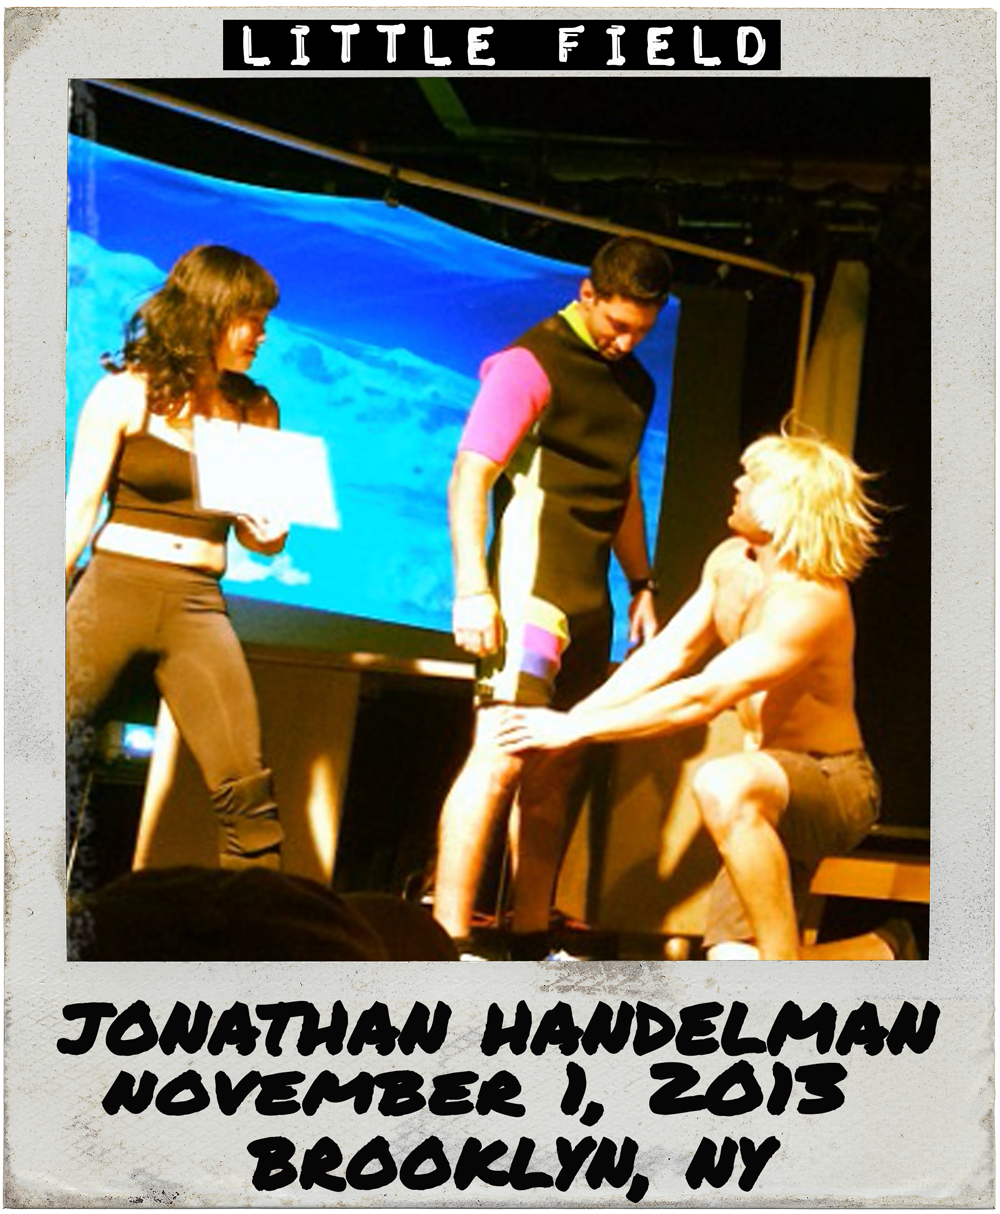 11_01_13_John-Handelman_Little-Field.png